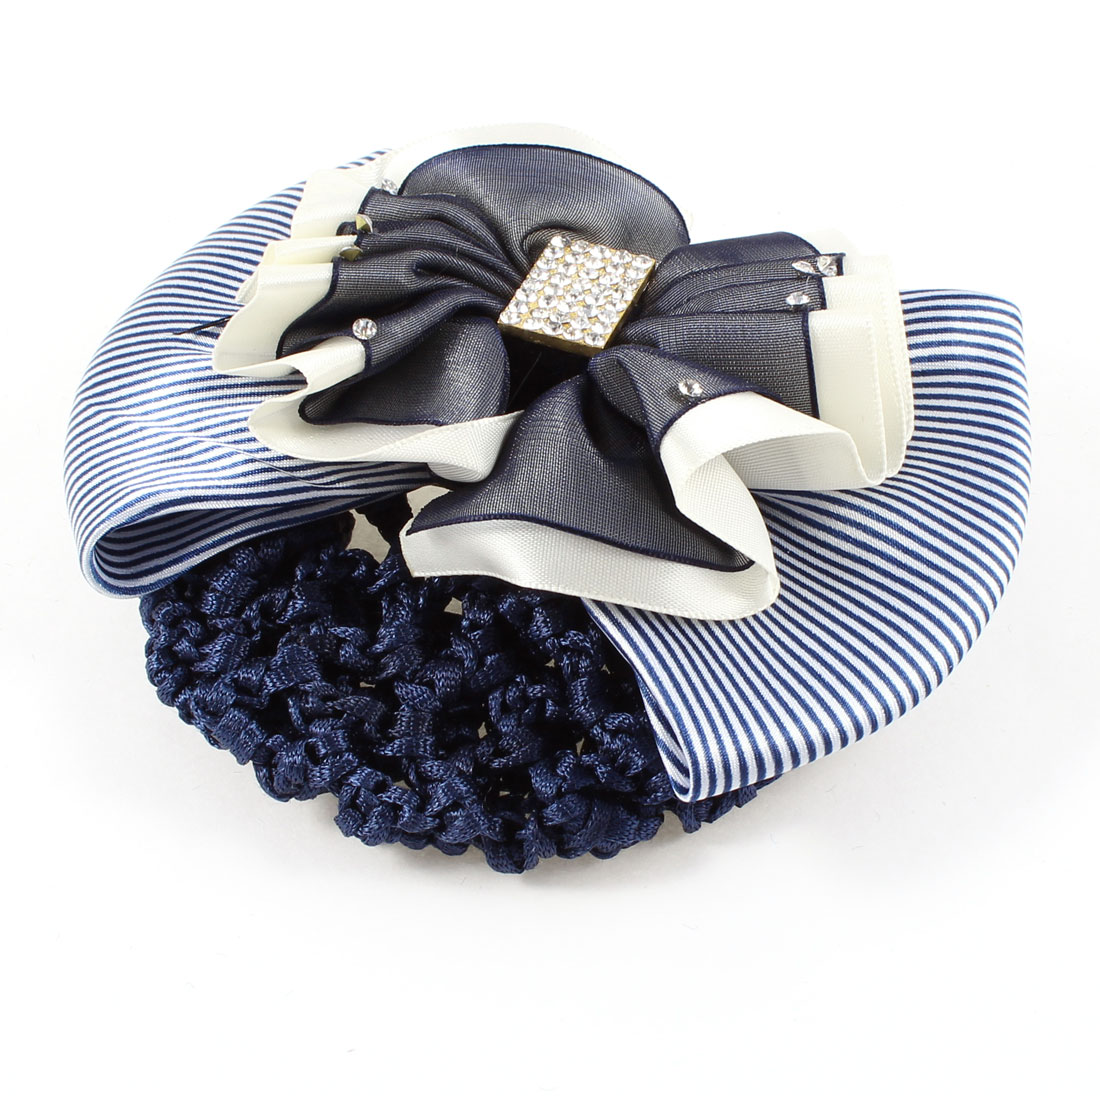 Rhinestones Inlaid Striped Bowknot Snood Net Hairclip Bun Cover Blue White